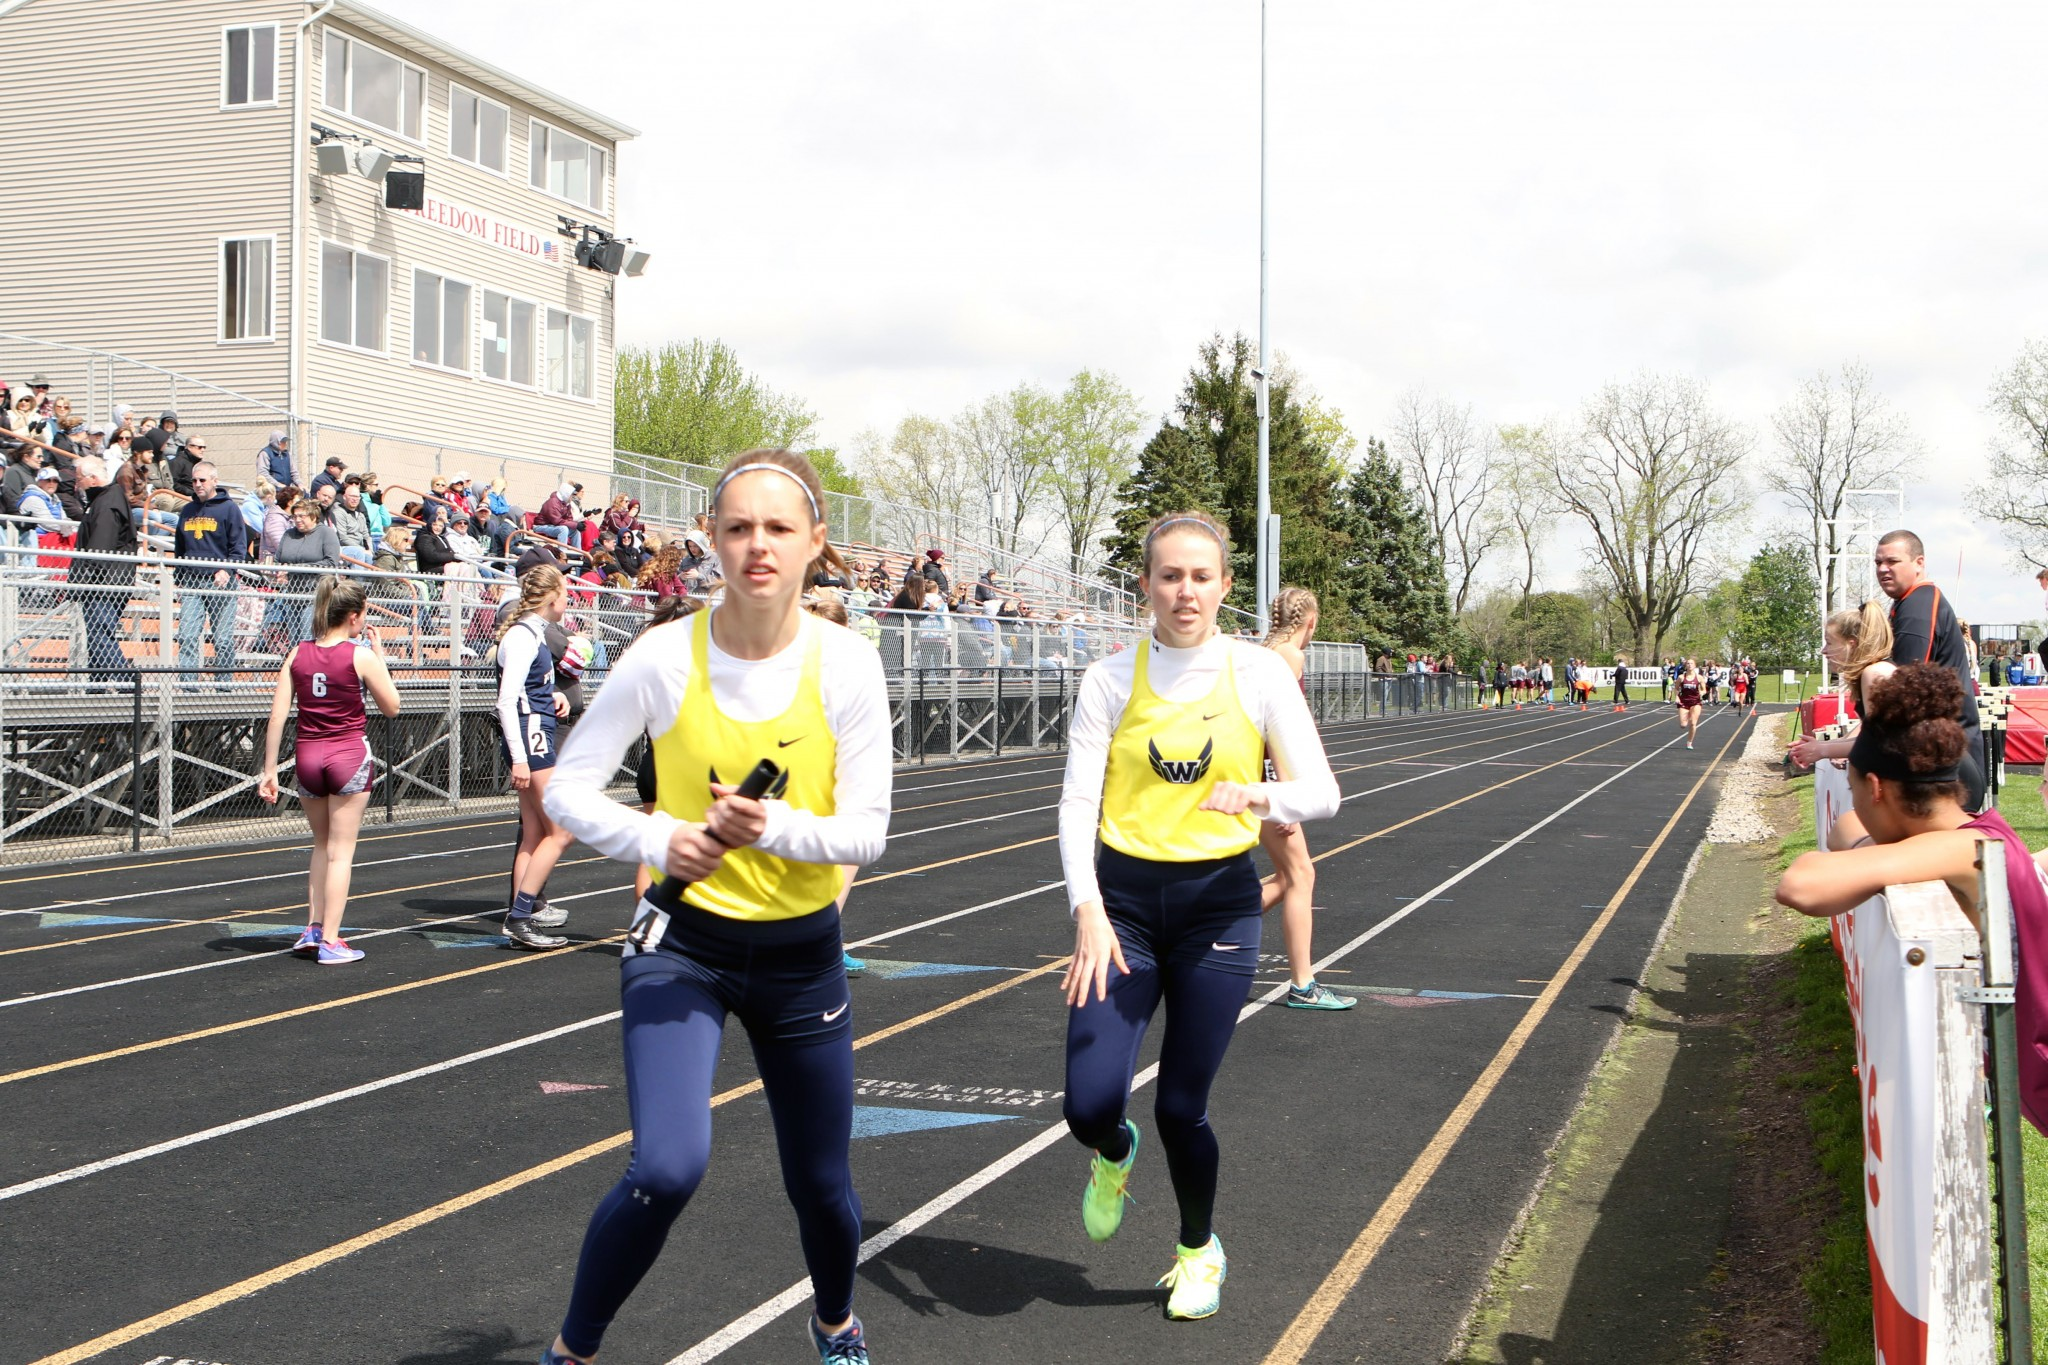 Anchor leg Ava Beam takes the baton from Woodmore teammate Olivia Thatcher. (Press photo by Lee Welch/FamilyPhotoGroup.com)